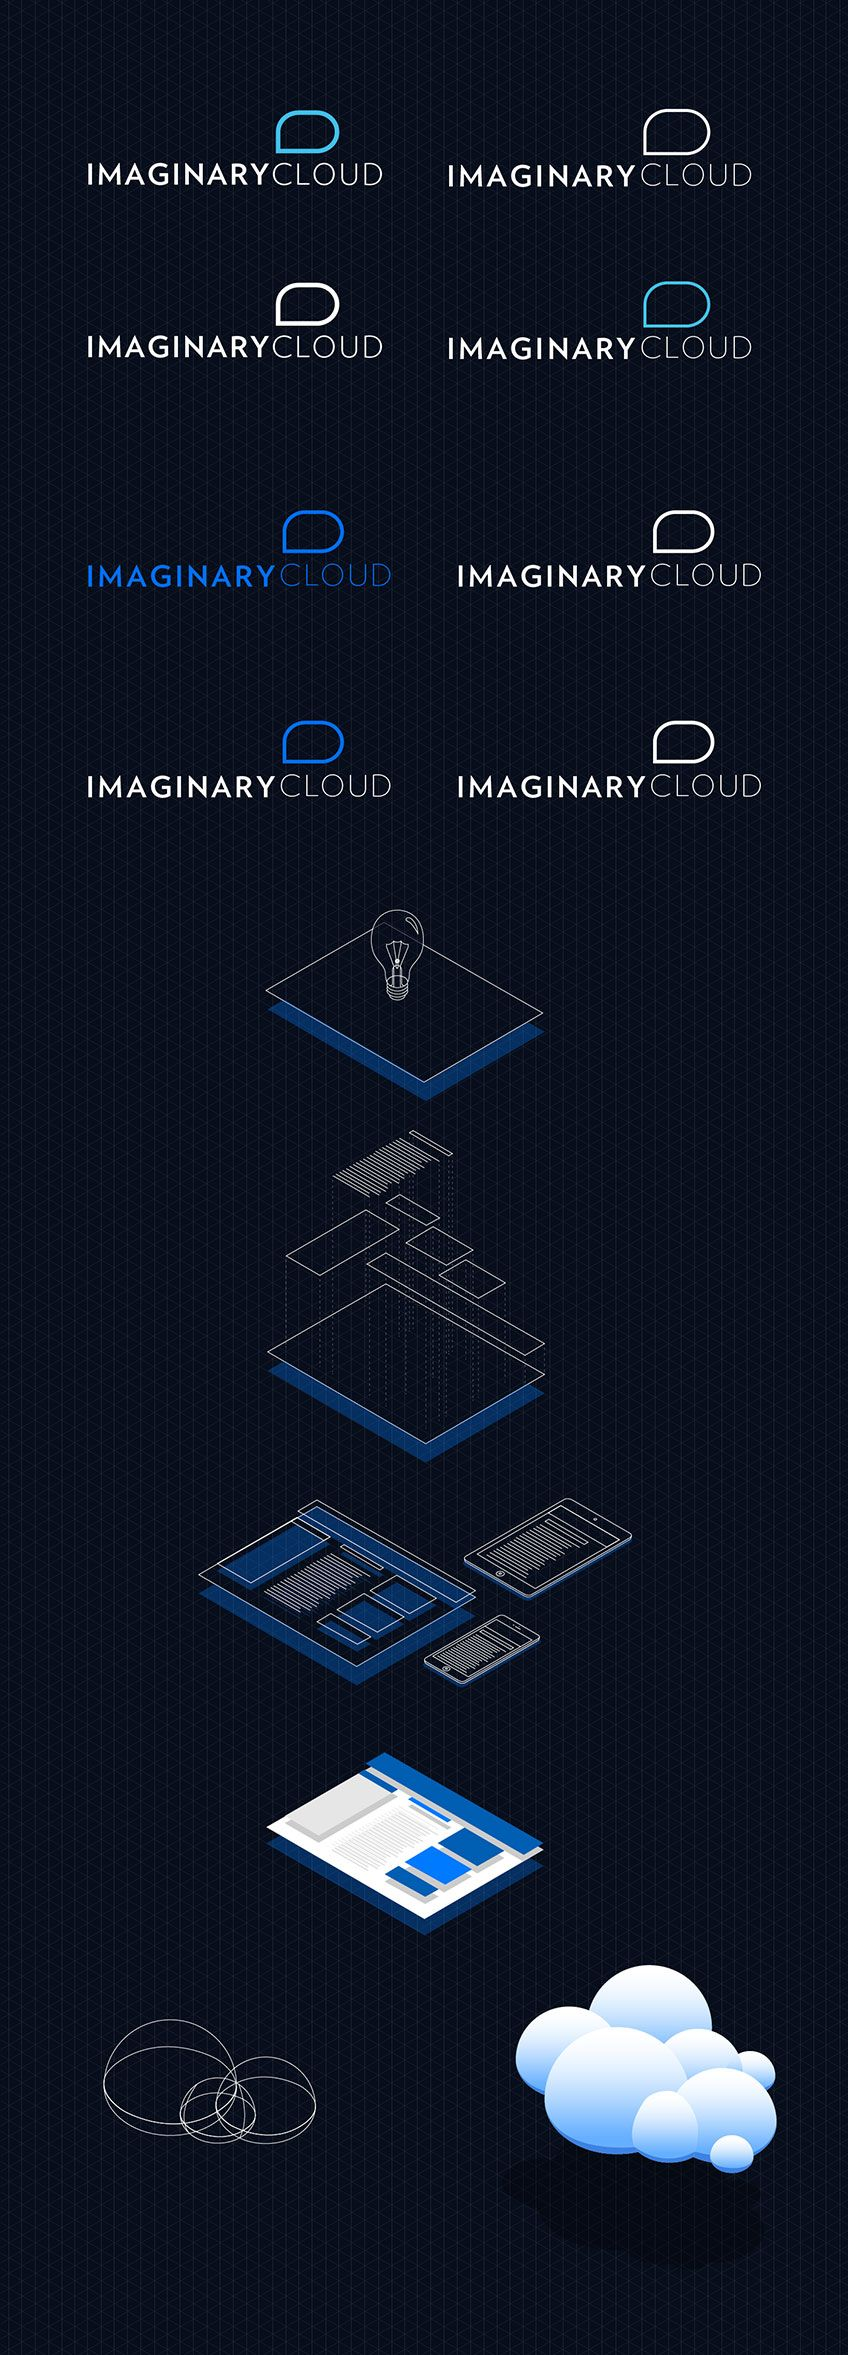 IMAGINARY CLOUD MOCK UPS